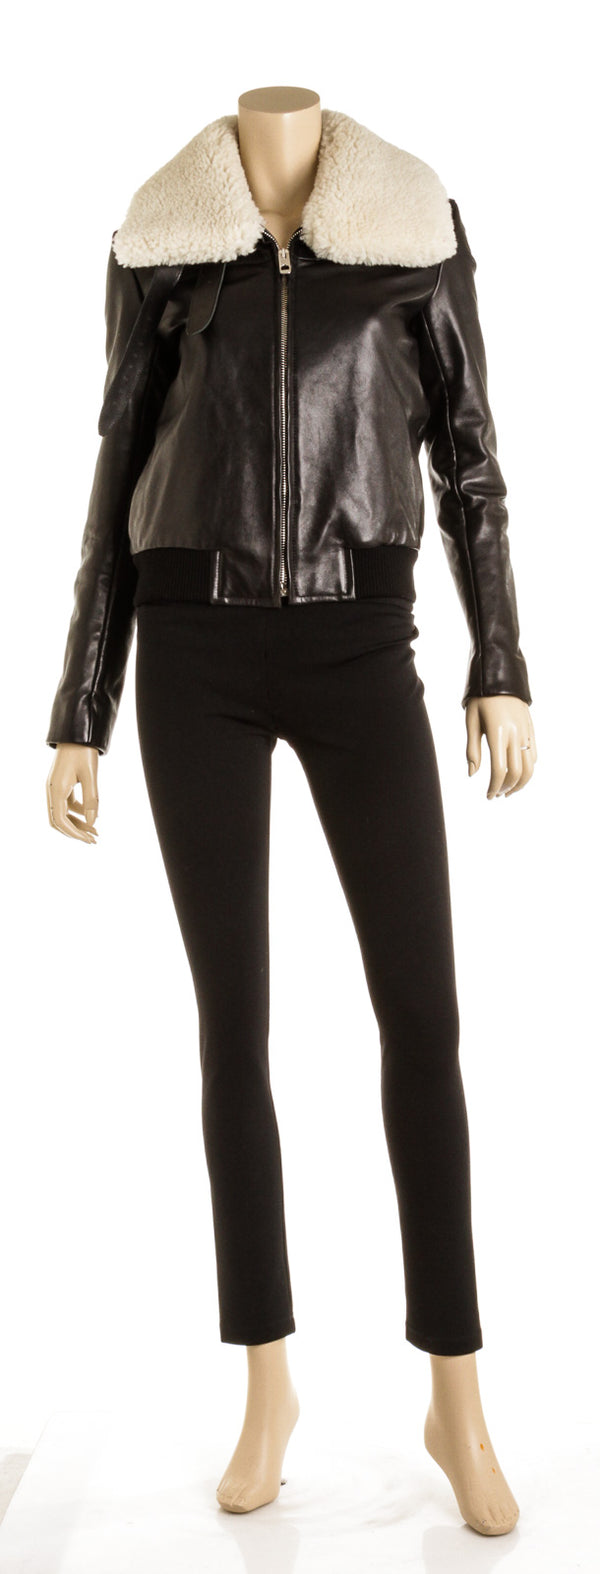 Balenciaga Black Leather Shearling Jacket ( Size 38)